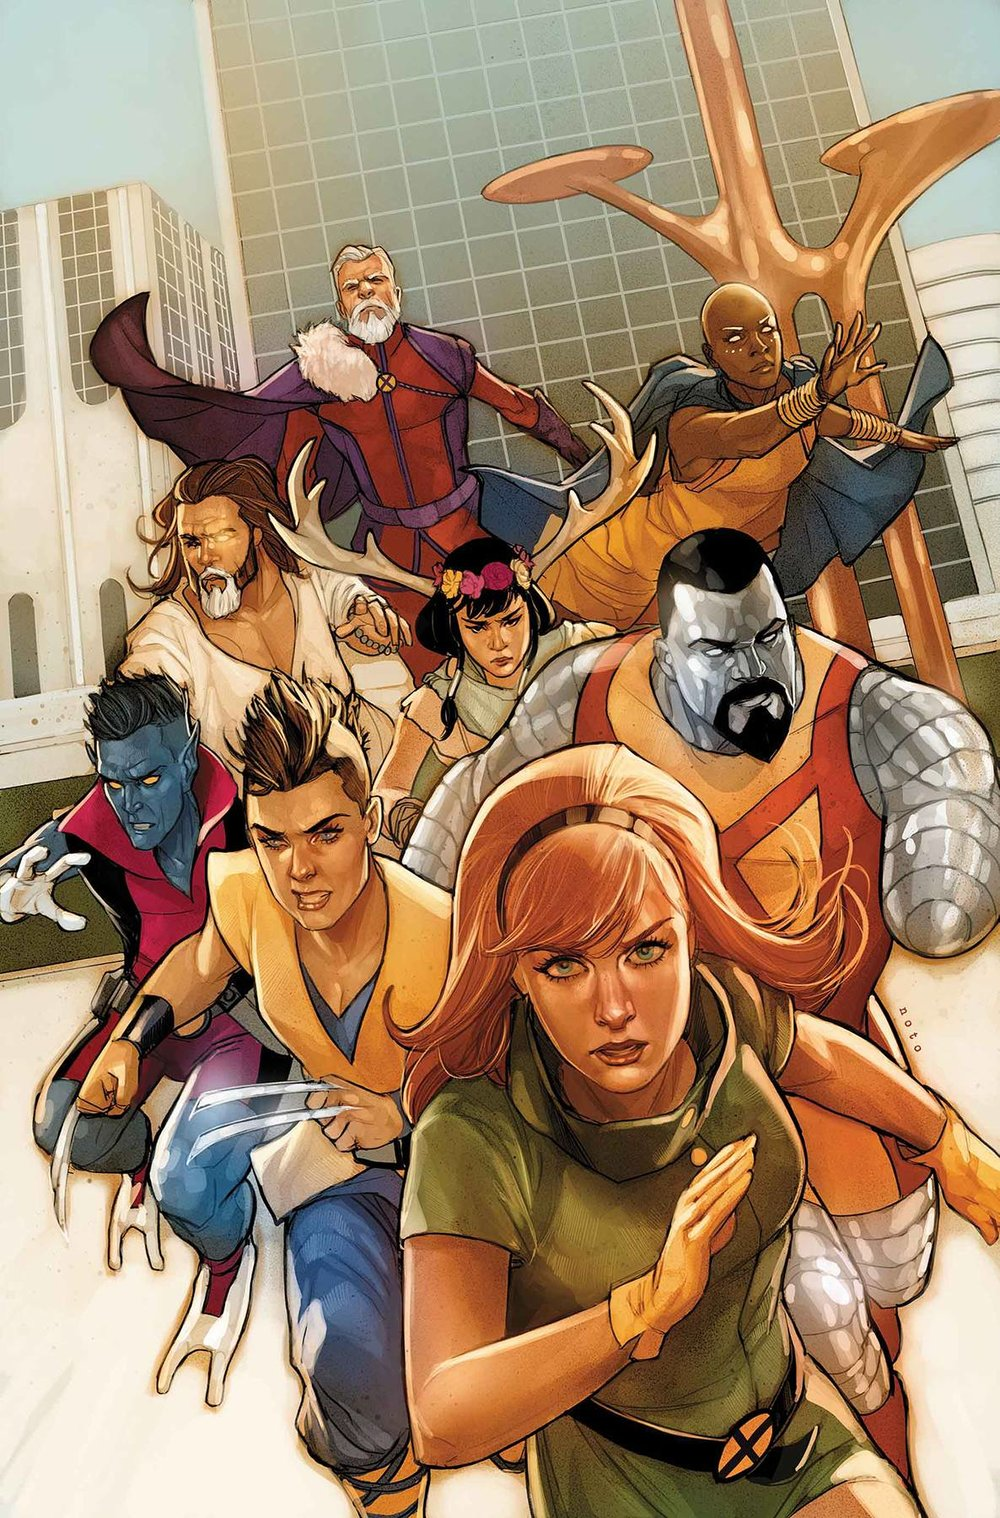 AGE OF X-MAN MARVELOUS X-MEN 1 of 5.jpg